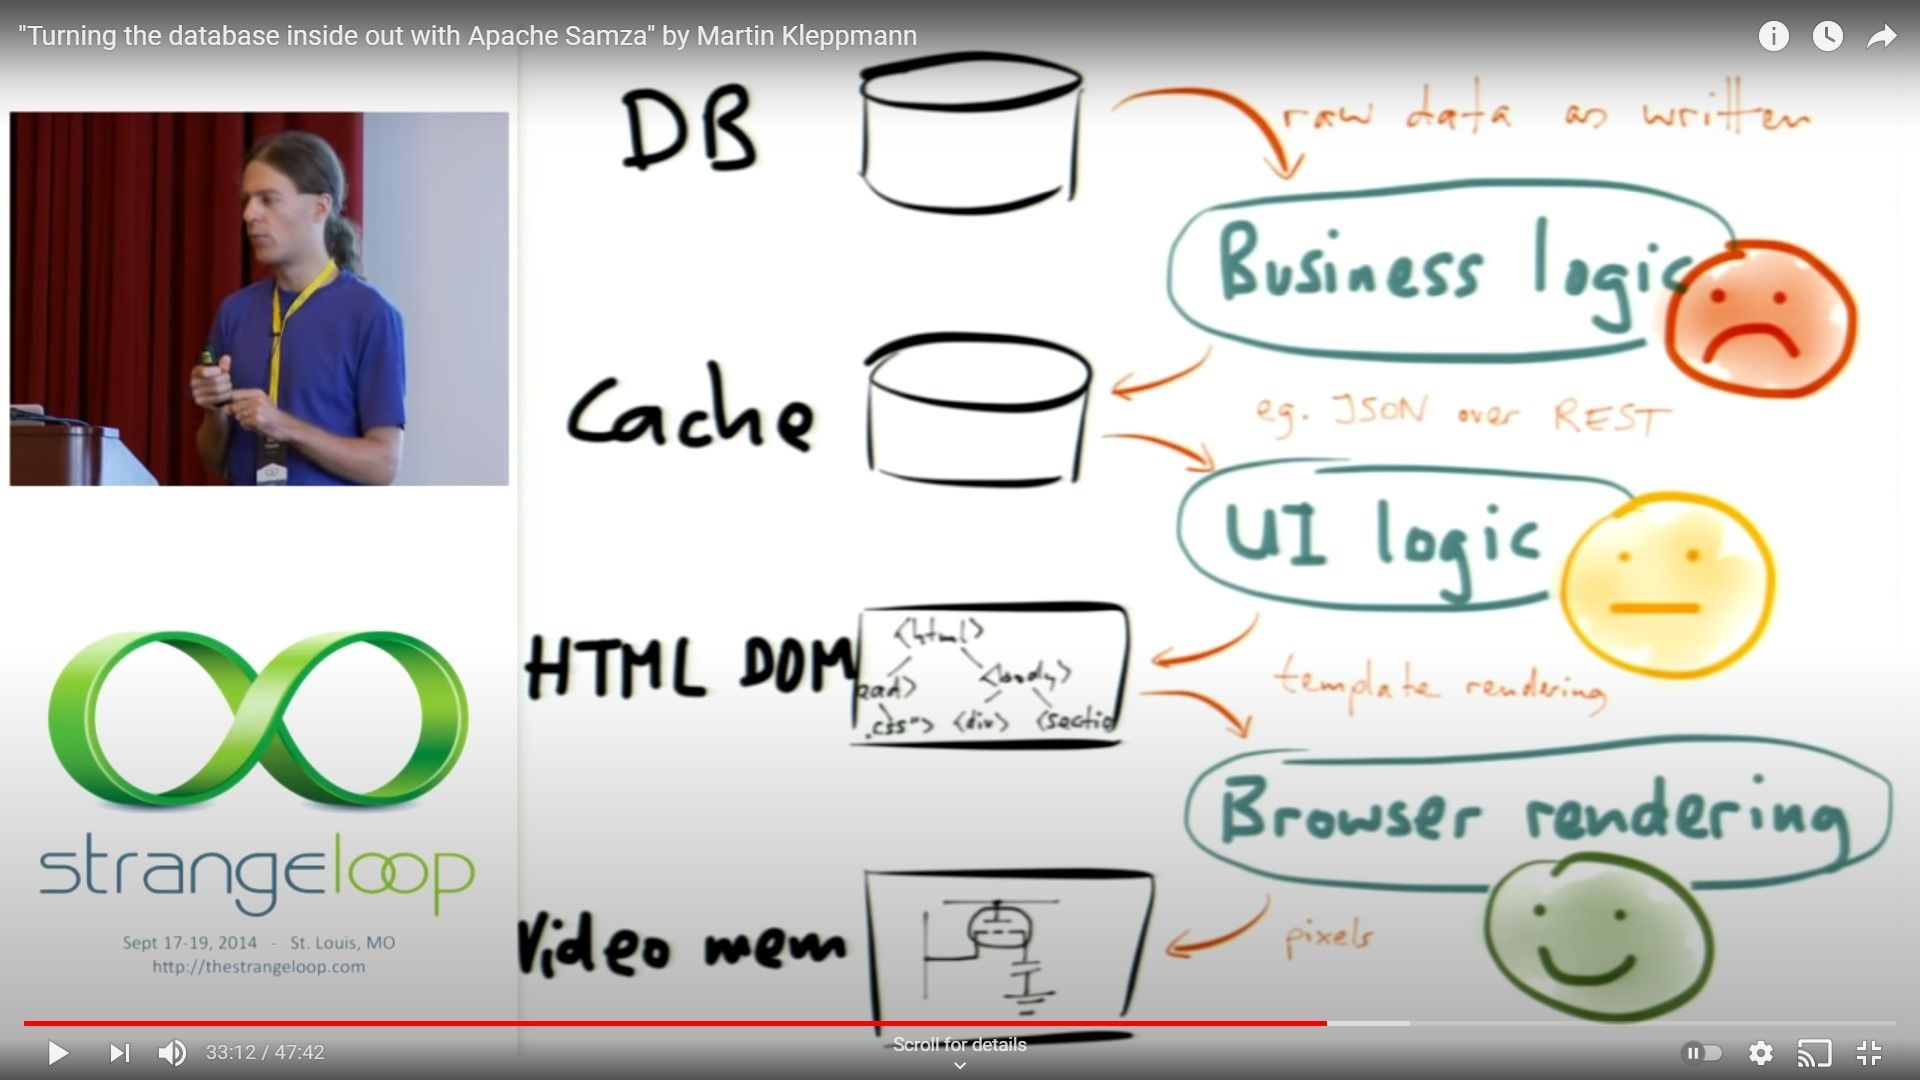 """""""Turning the database inside out with Apache Samza"""" by Martin Kleppmann"""